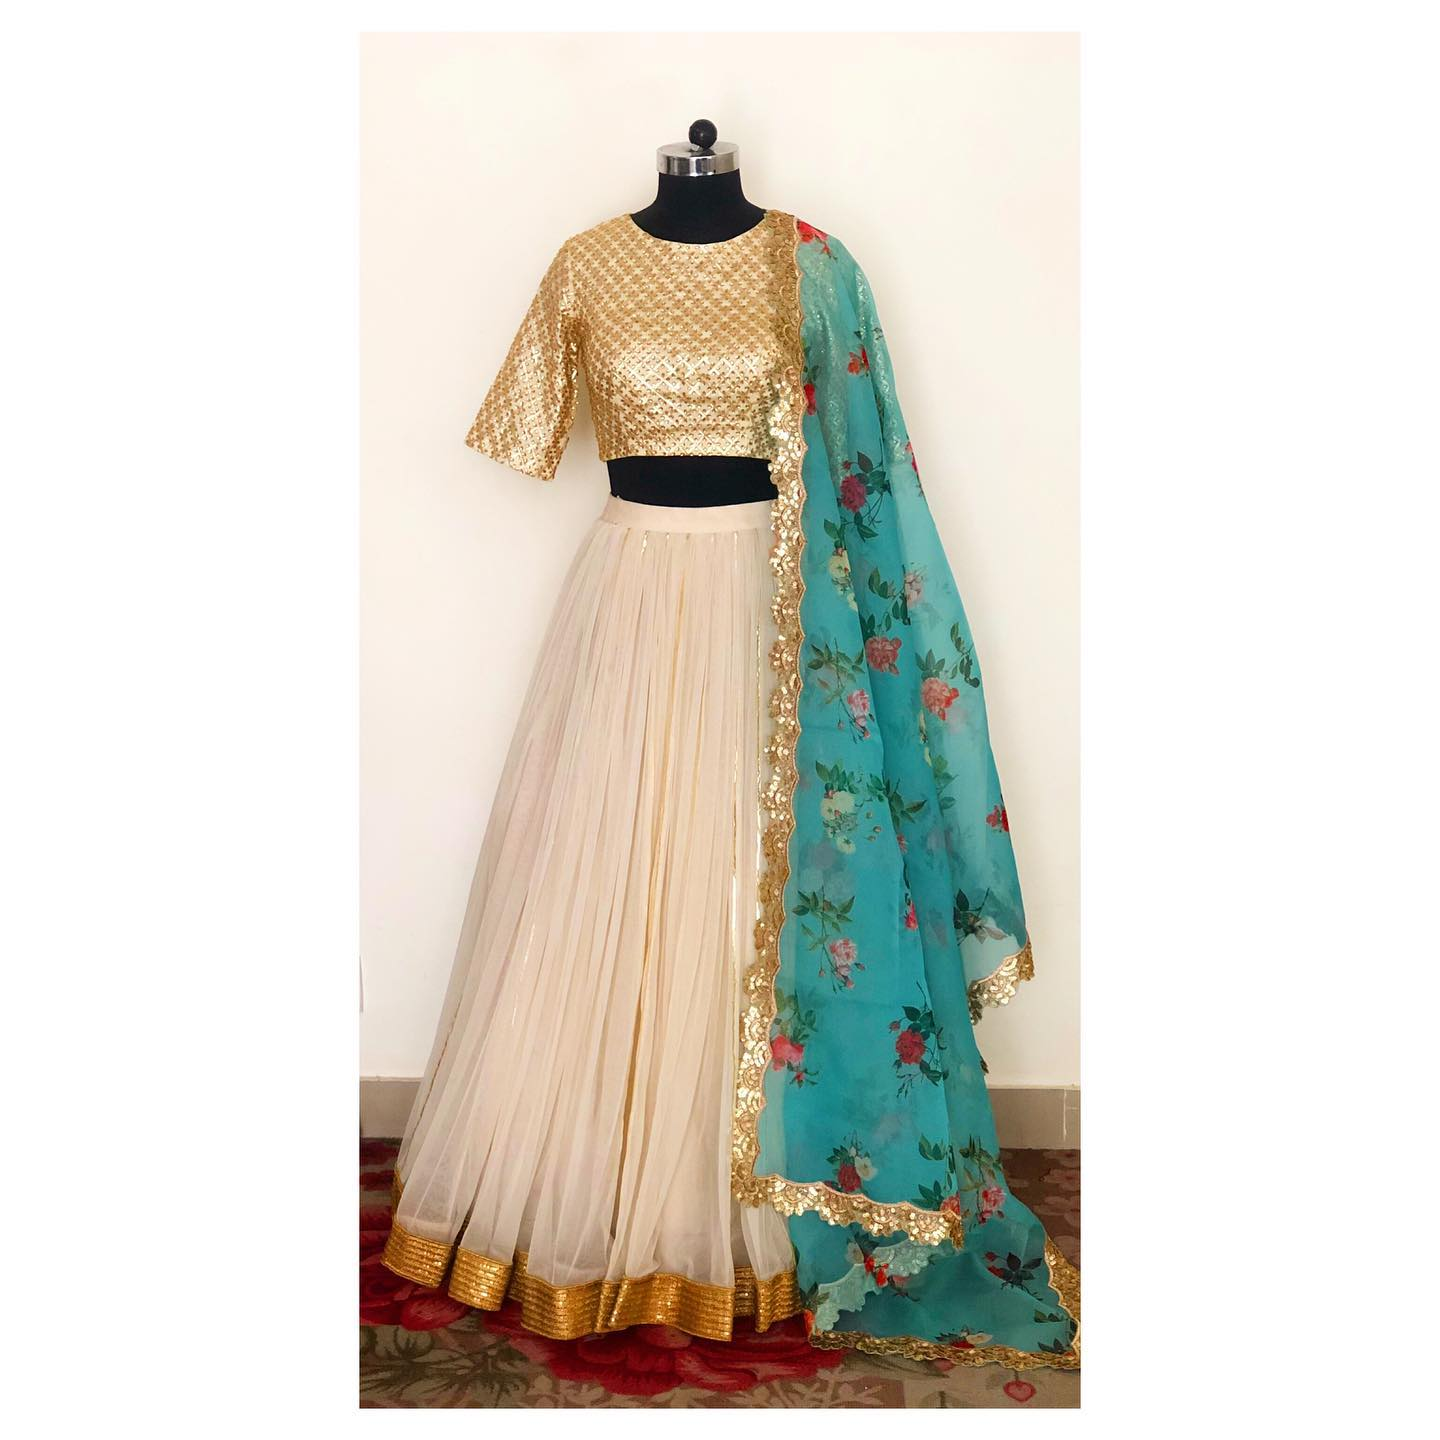 Cream soft net gathered lehenga with kundan embellished blouse and floral print organza dupatta. Can be customised in any color and size. To order/customise DM or WhatsApp at +91-8527463626… 2021-09-16